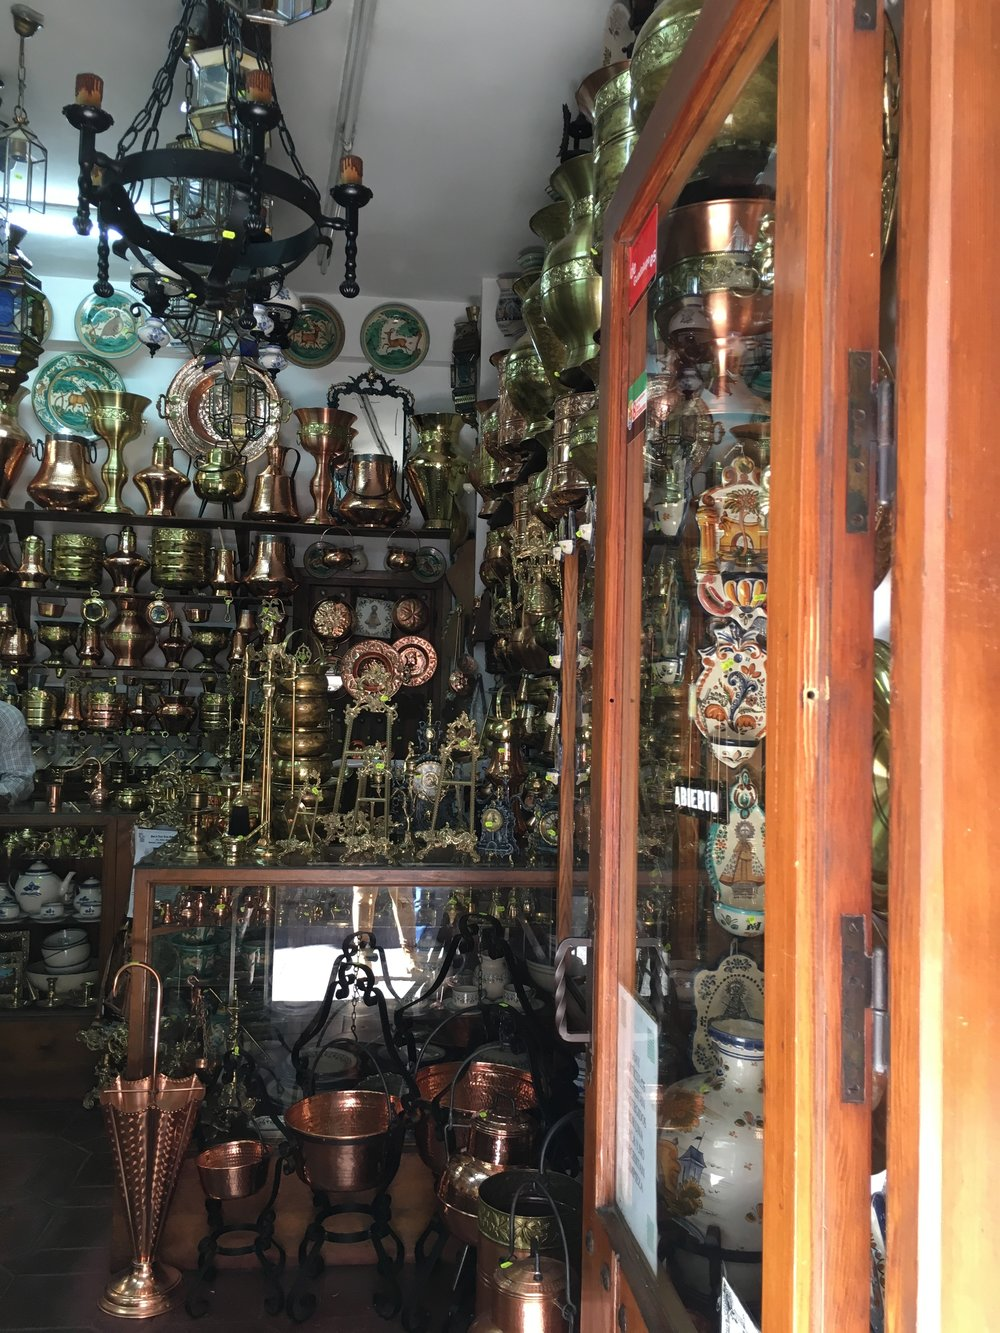 Typical shop in Guadalupe/ Tienda típica de Guadalupe